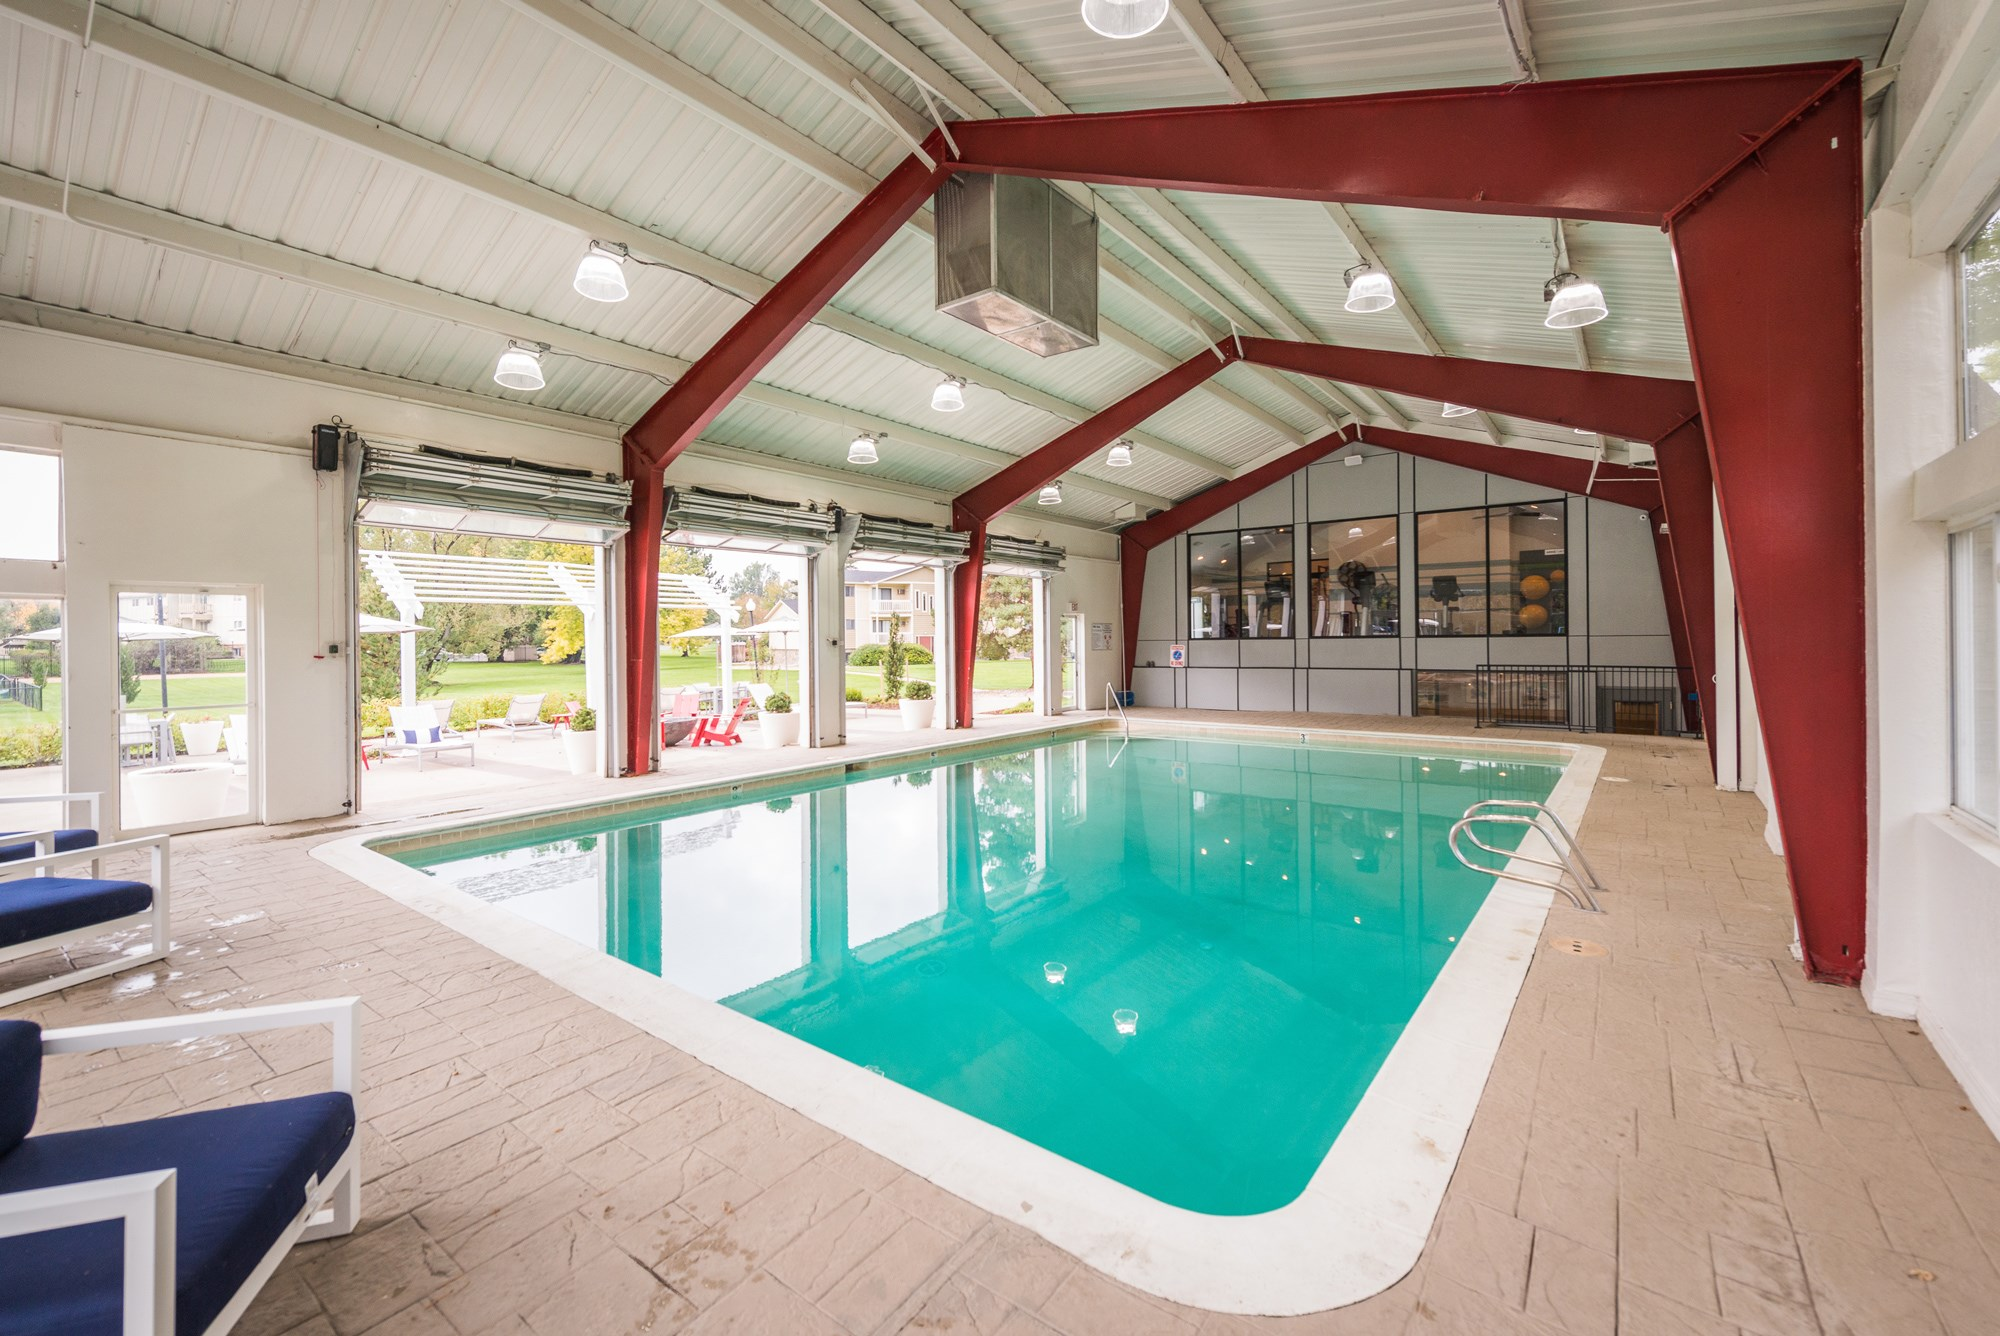 Swimming Pool at Village Gardens Apartments in Fort Collins, CO